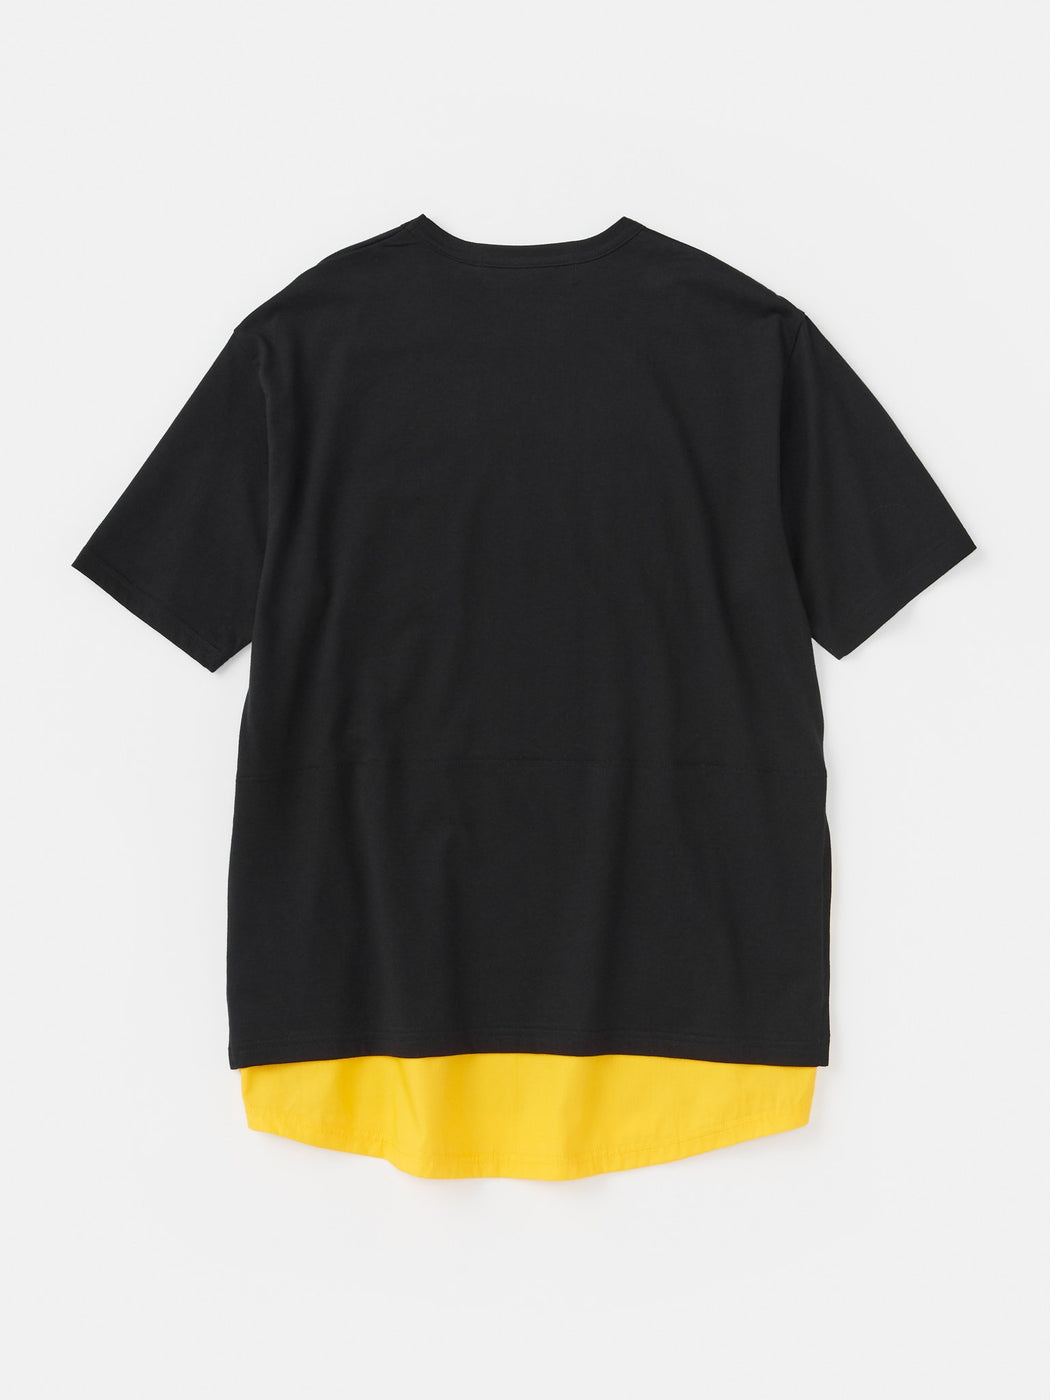 ALOYE Shirt Fabrics Short Sleeve Layerd T-shirt Black-Yellow